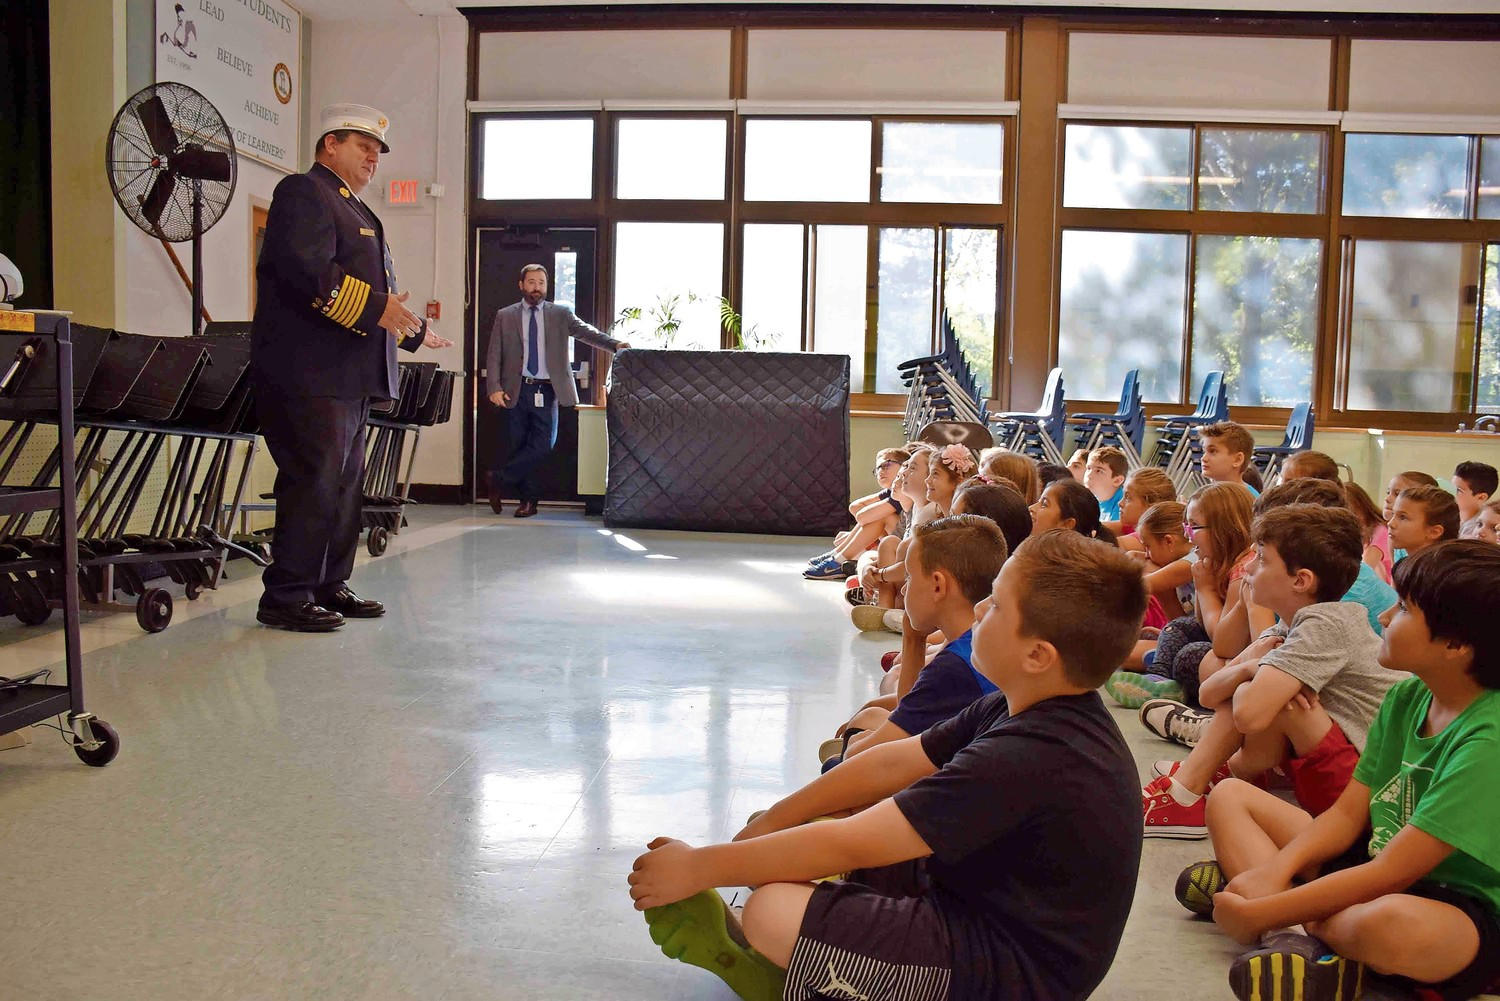 Wantagh firefighter John Loeber spoke to third, fourth and fifth-graders about what to do in a fire emergency.